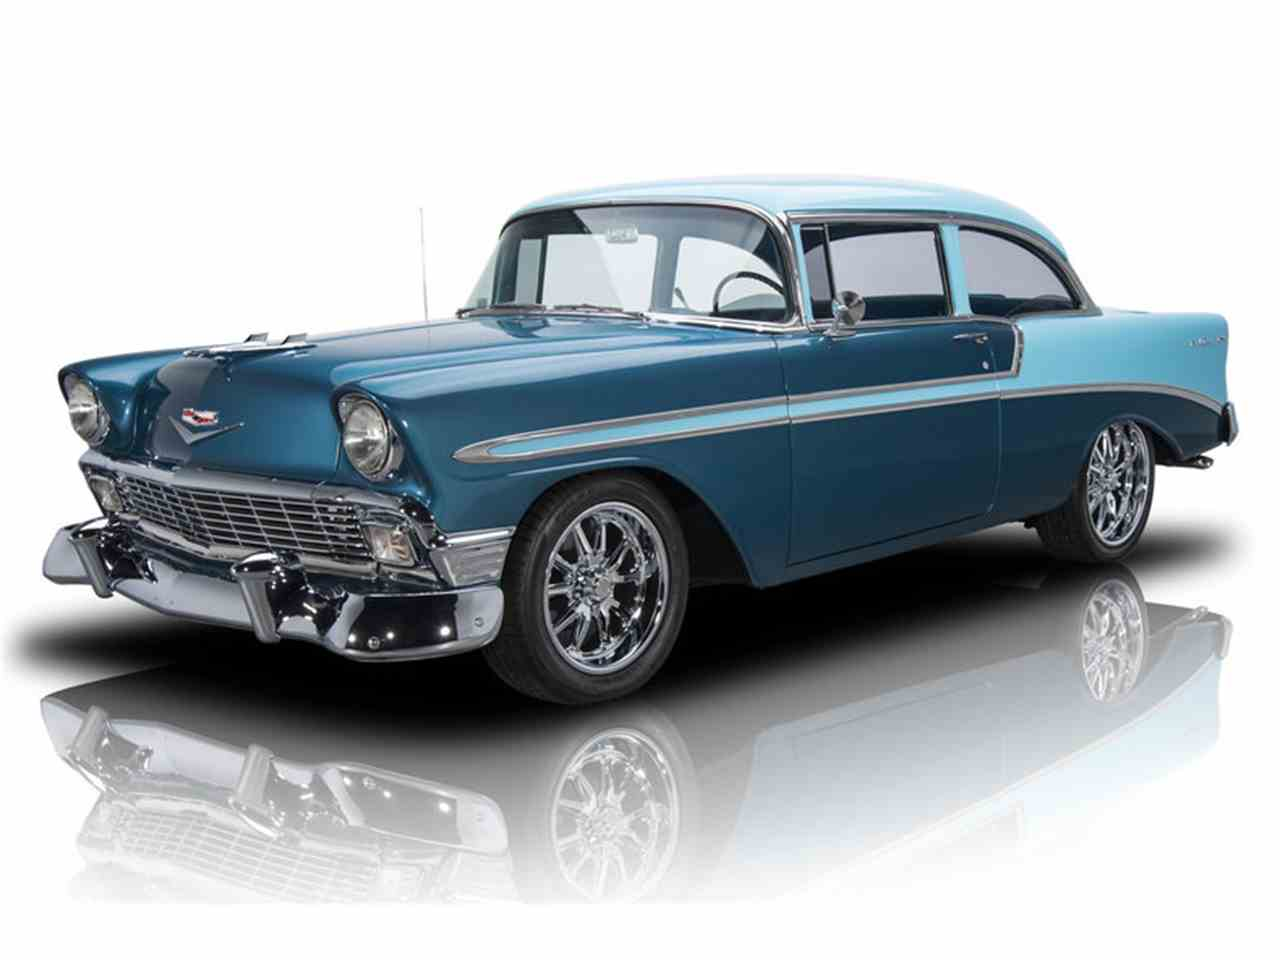 Beau Large Picture Of U002756 Bel Air   MXDZ